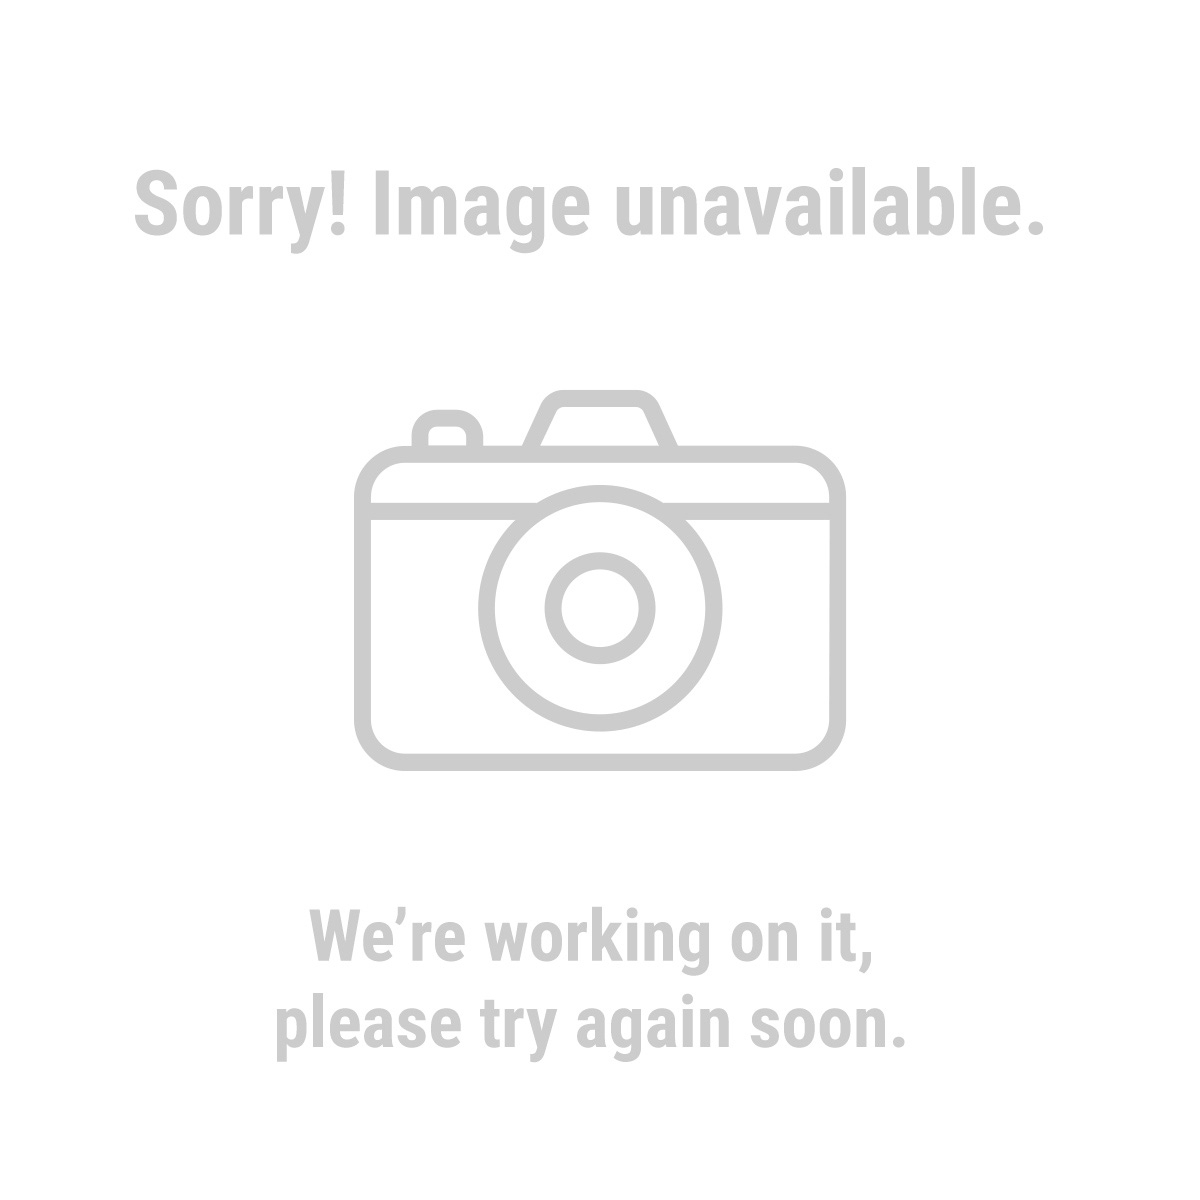 Pittsburgh 65339 Multi-Use Rule/Gauge